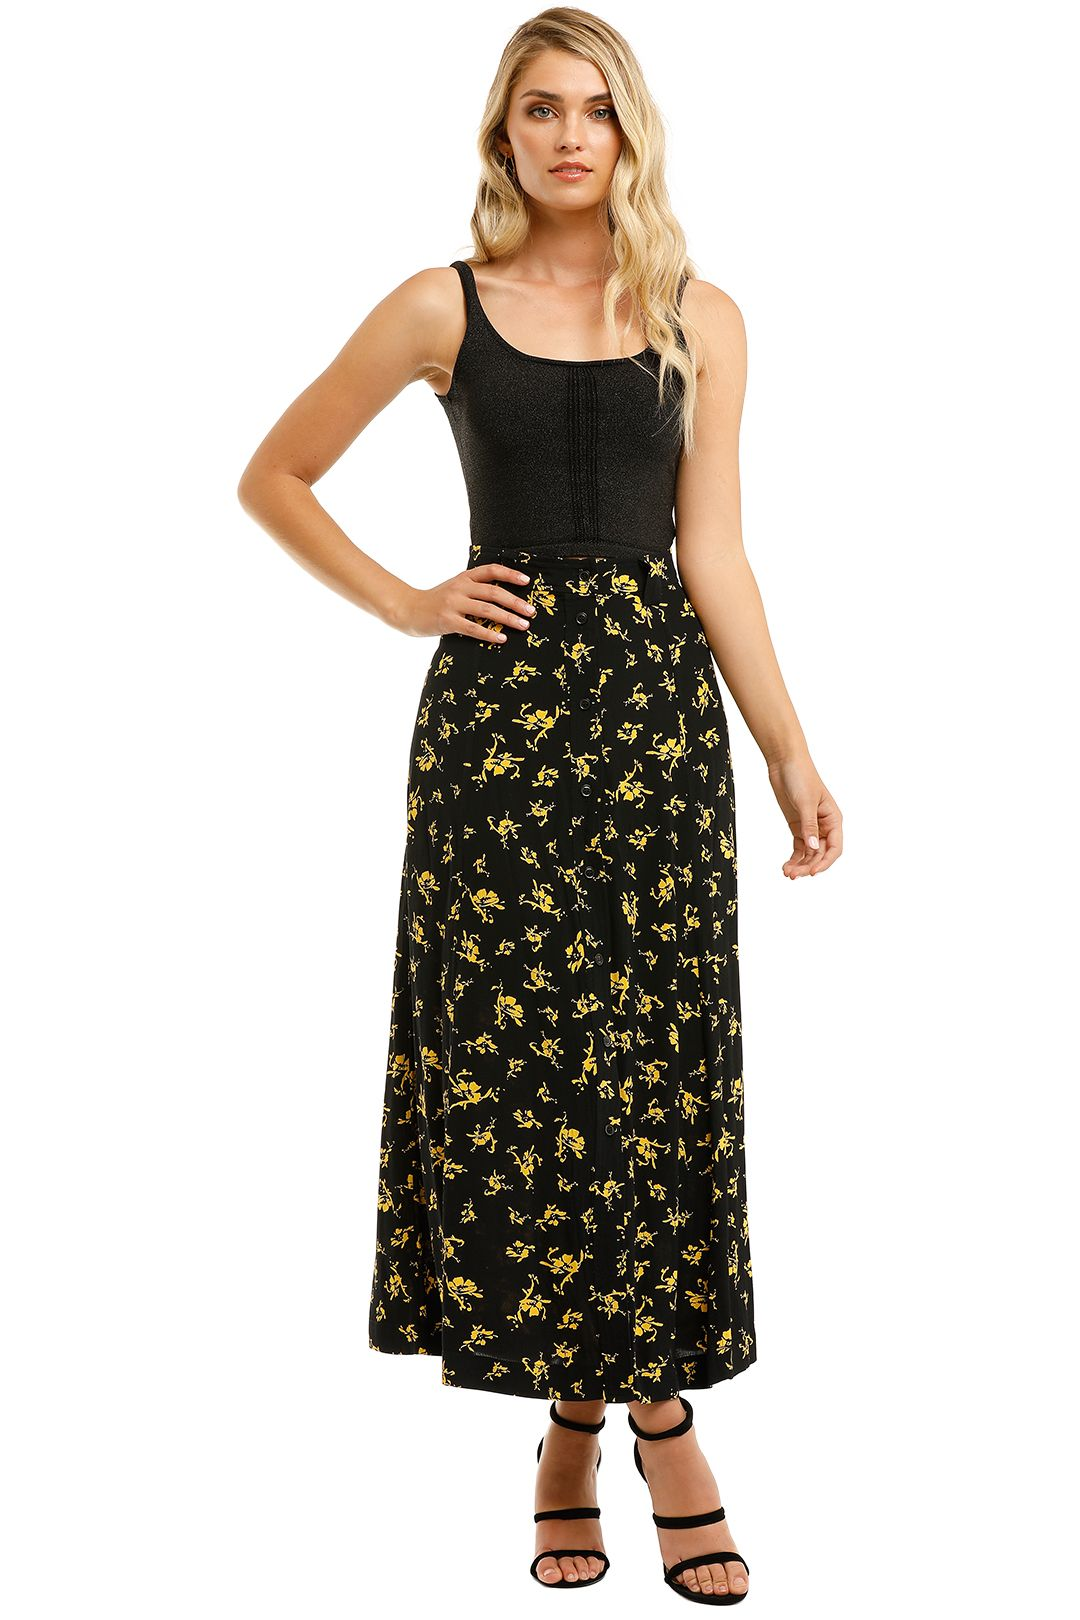 Ganni-Printed-Crepe-Long-Skirt-Black-Yellow-Front